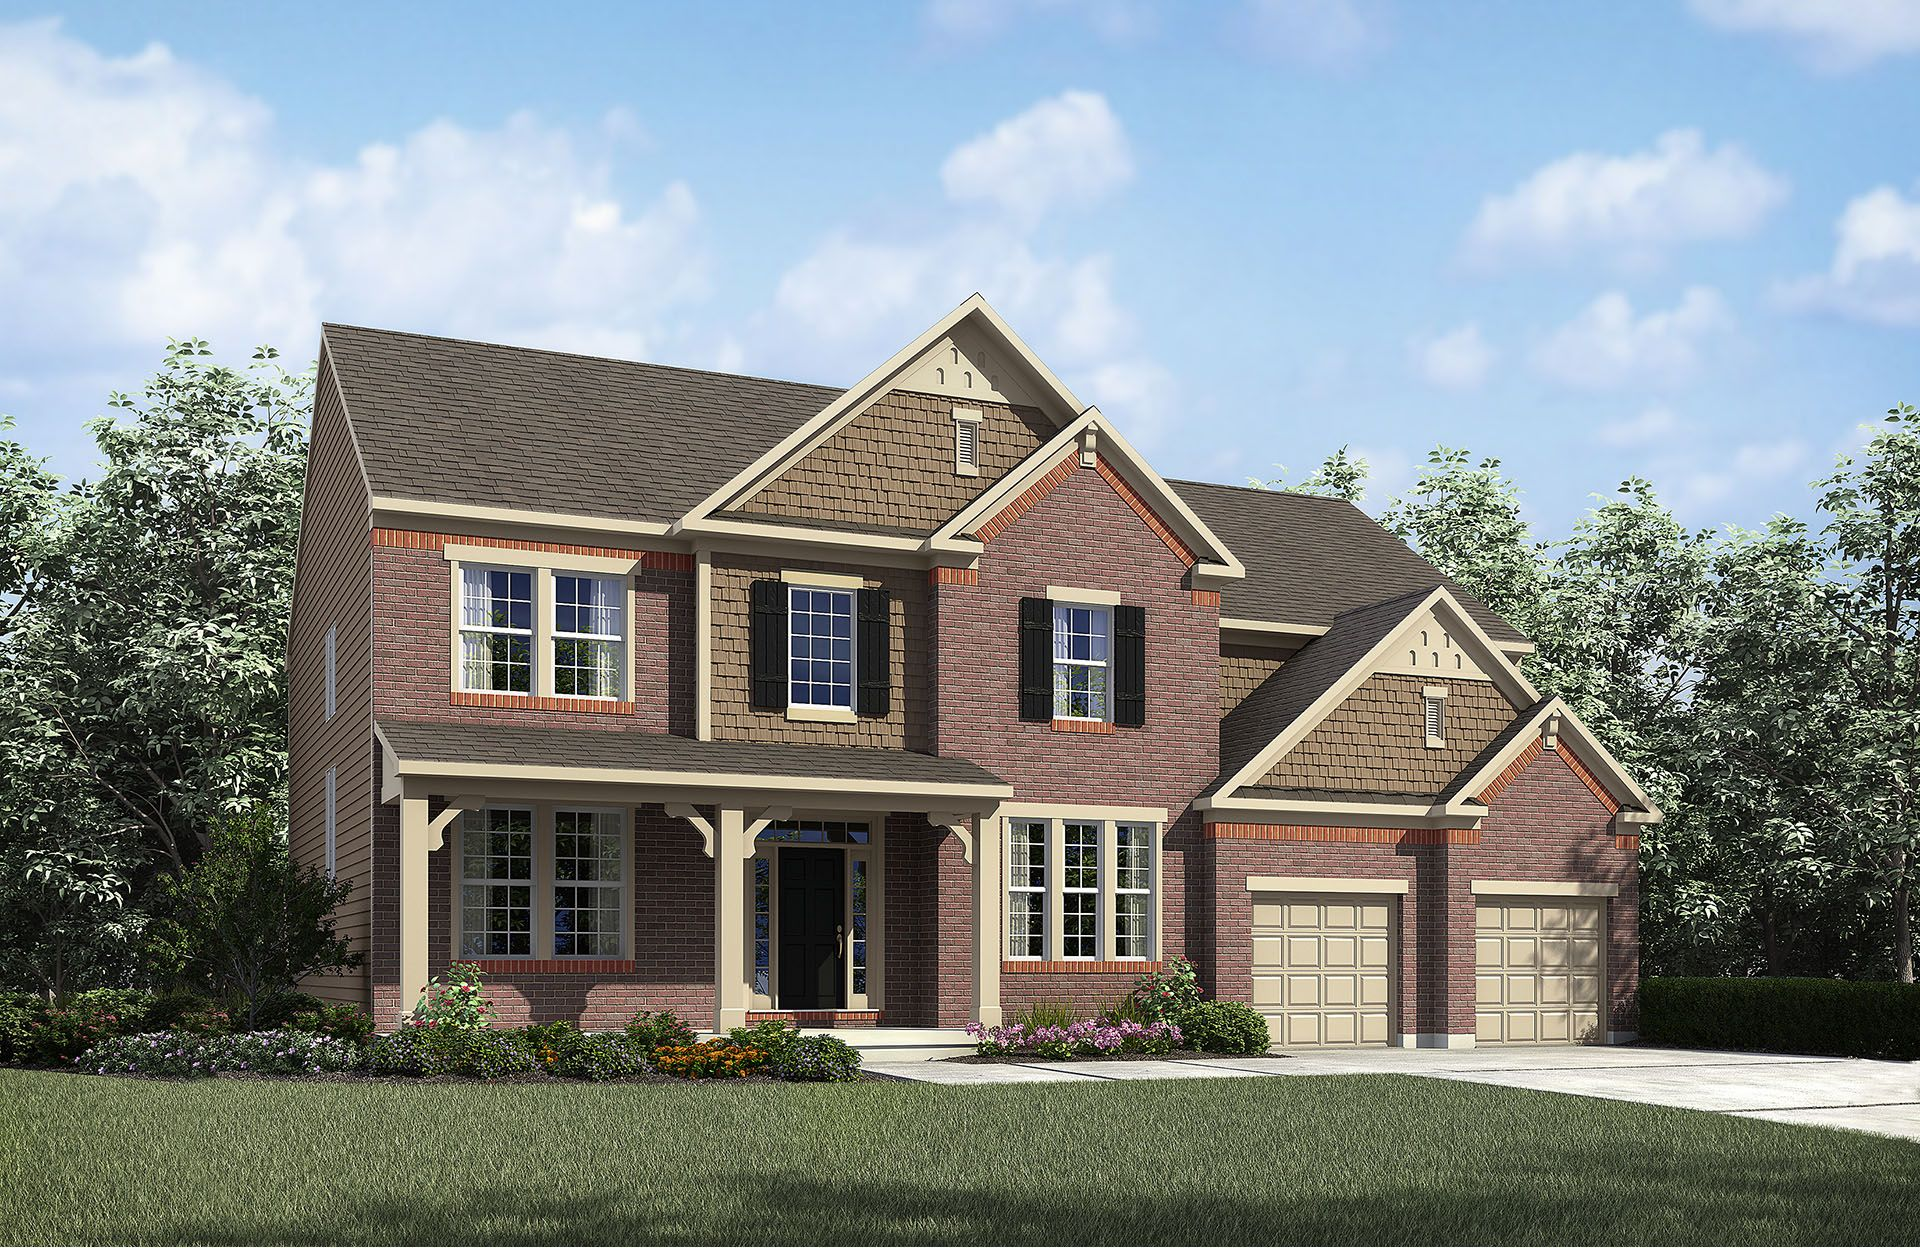 Unifamiliar por un Venta en Tallyn Ridge Estates - Ash Lawn 8395 Pine Bluff Road Frederick, Maryland 21704 United States